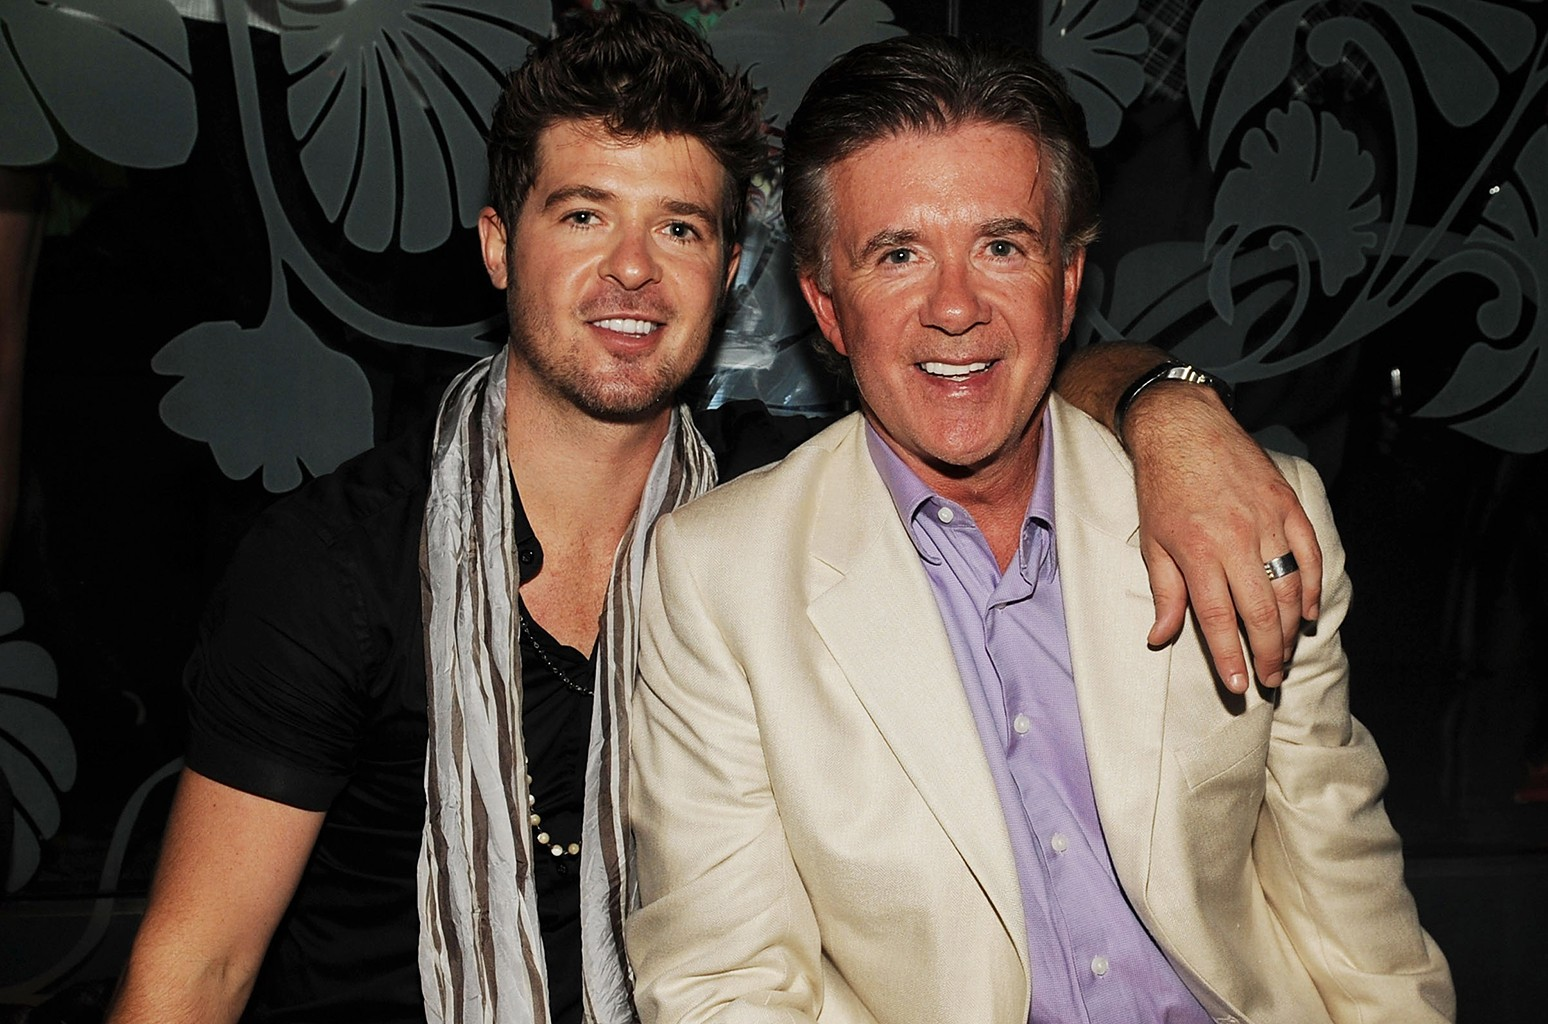 Robin Thicke and Alan Thicke attend The Bank nightclub at Bellagio Las Vegas on June 19, 2009 in Las Vegas.